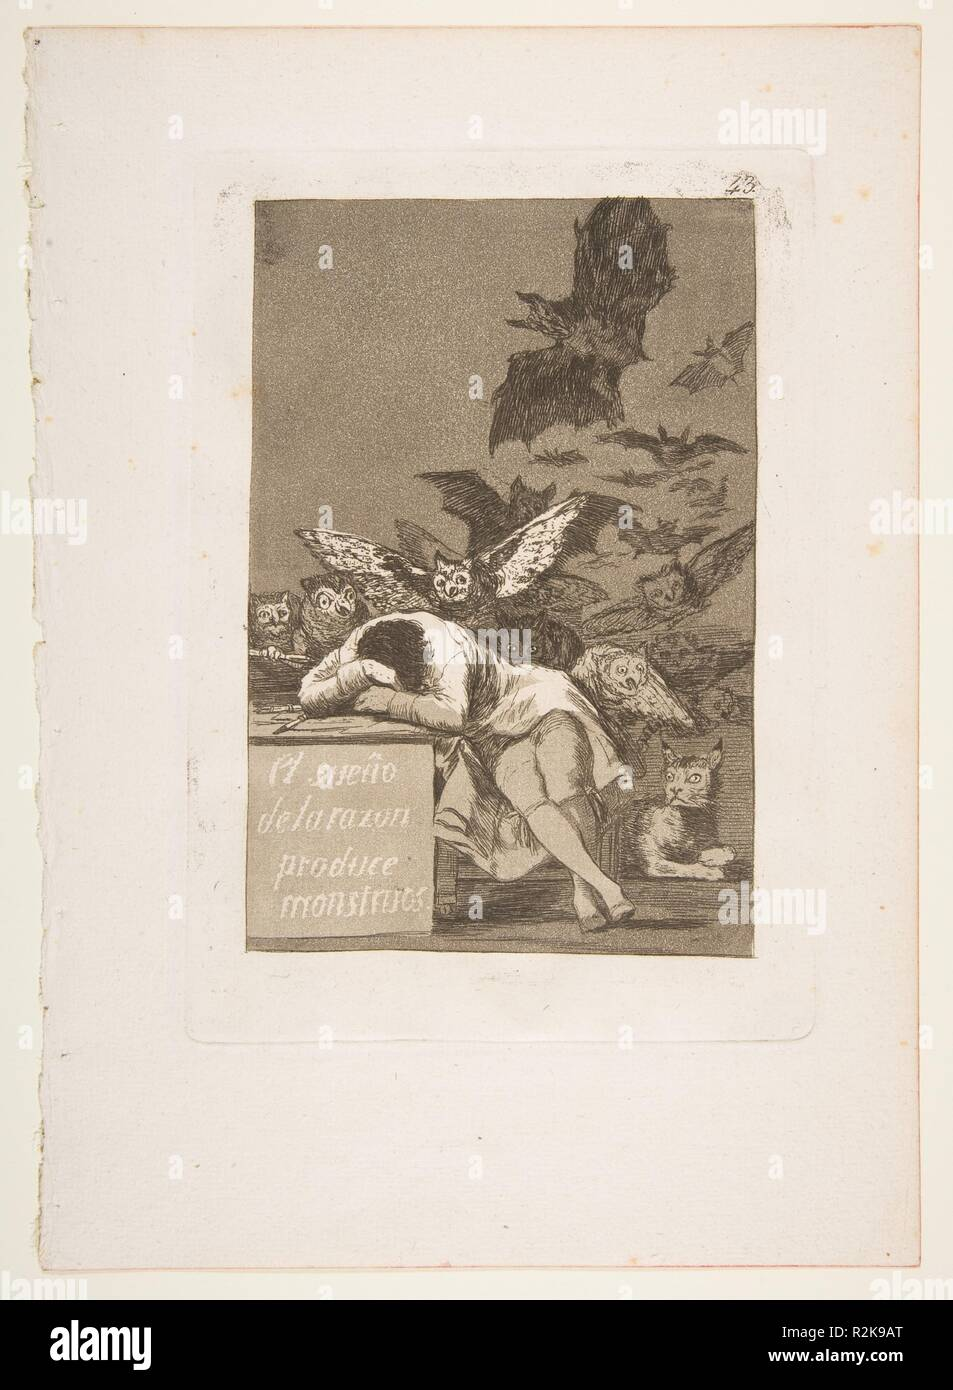 Plate 43 from 'Los Caprichos': The sleep of reason produces monsters (El sueño de la razon produce monstruos). Artist: Goya (Francisco de Goya y Lucientes) (Spanish, Fuendetodos 1746-1828 Bordeaux). Dimensions: Plate: 8 3/8 x 5 15/16 in. (21.2 x 15.1 cm)  Sheet: 11 5/8 x 8 1/4 in. (29.5 x 21 cm). Series/Portfolio: Los Caprichos. Date: 1799.  This is the best known image from Goya's series of 80 aquatint etchings published in 1799 known as 'Los Caprichos' that are generally understood as the artist's criticism of the society in which he lived. Goya worked on the series from around 1796-98 and m Stock Photo